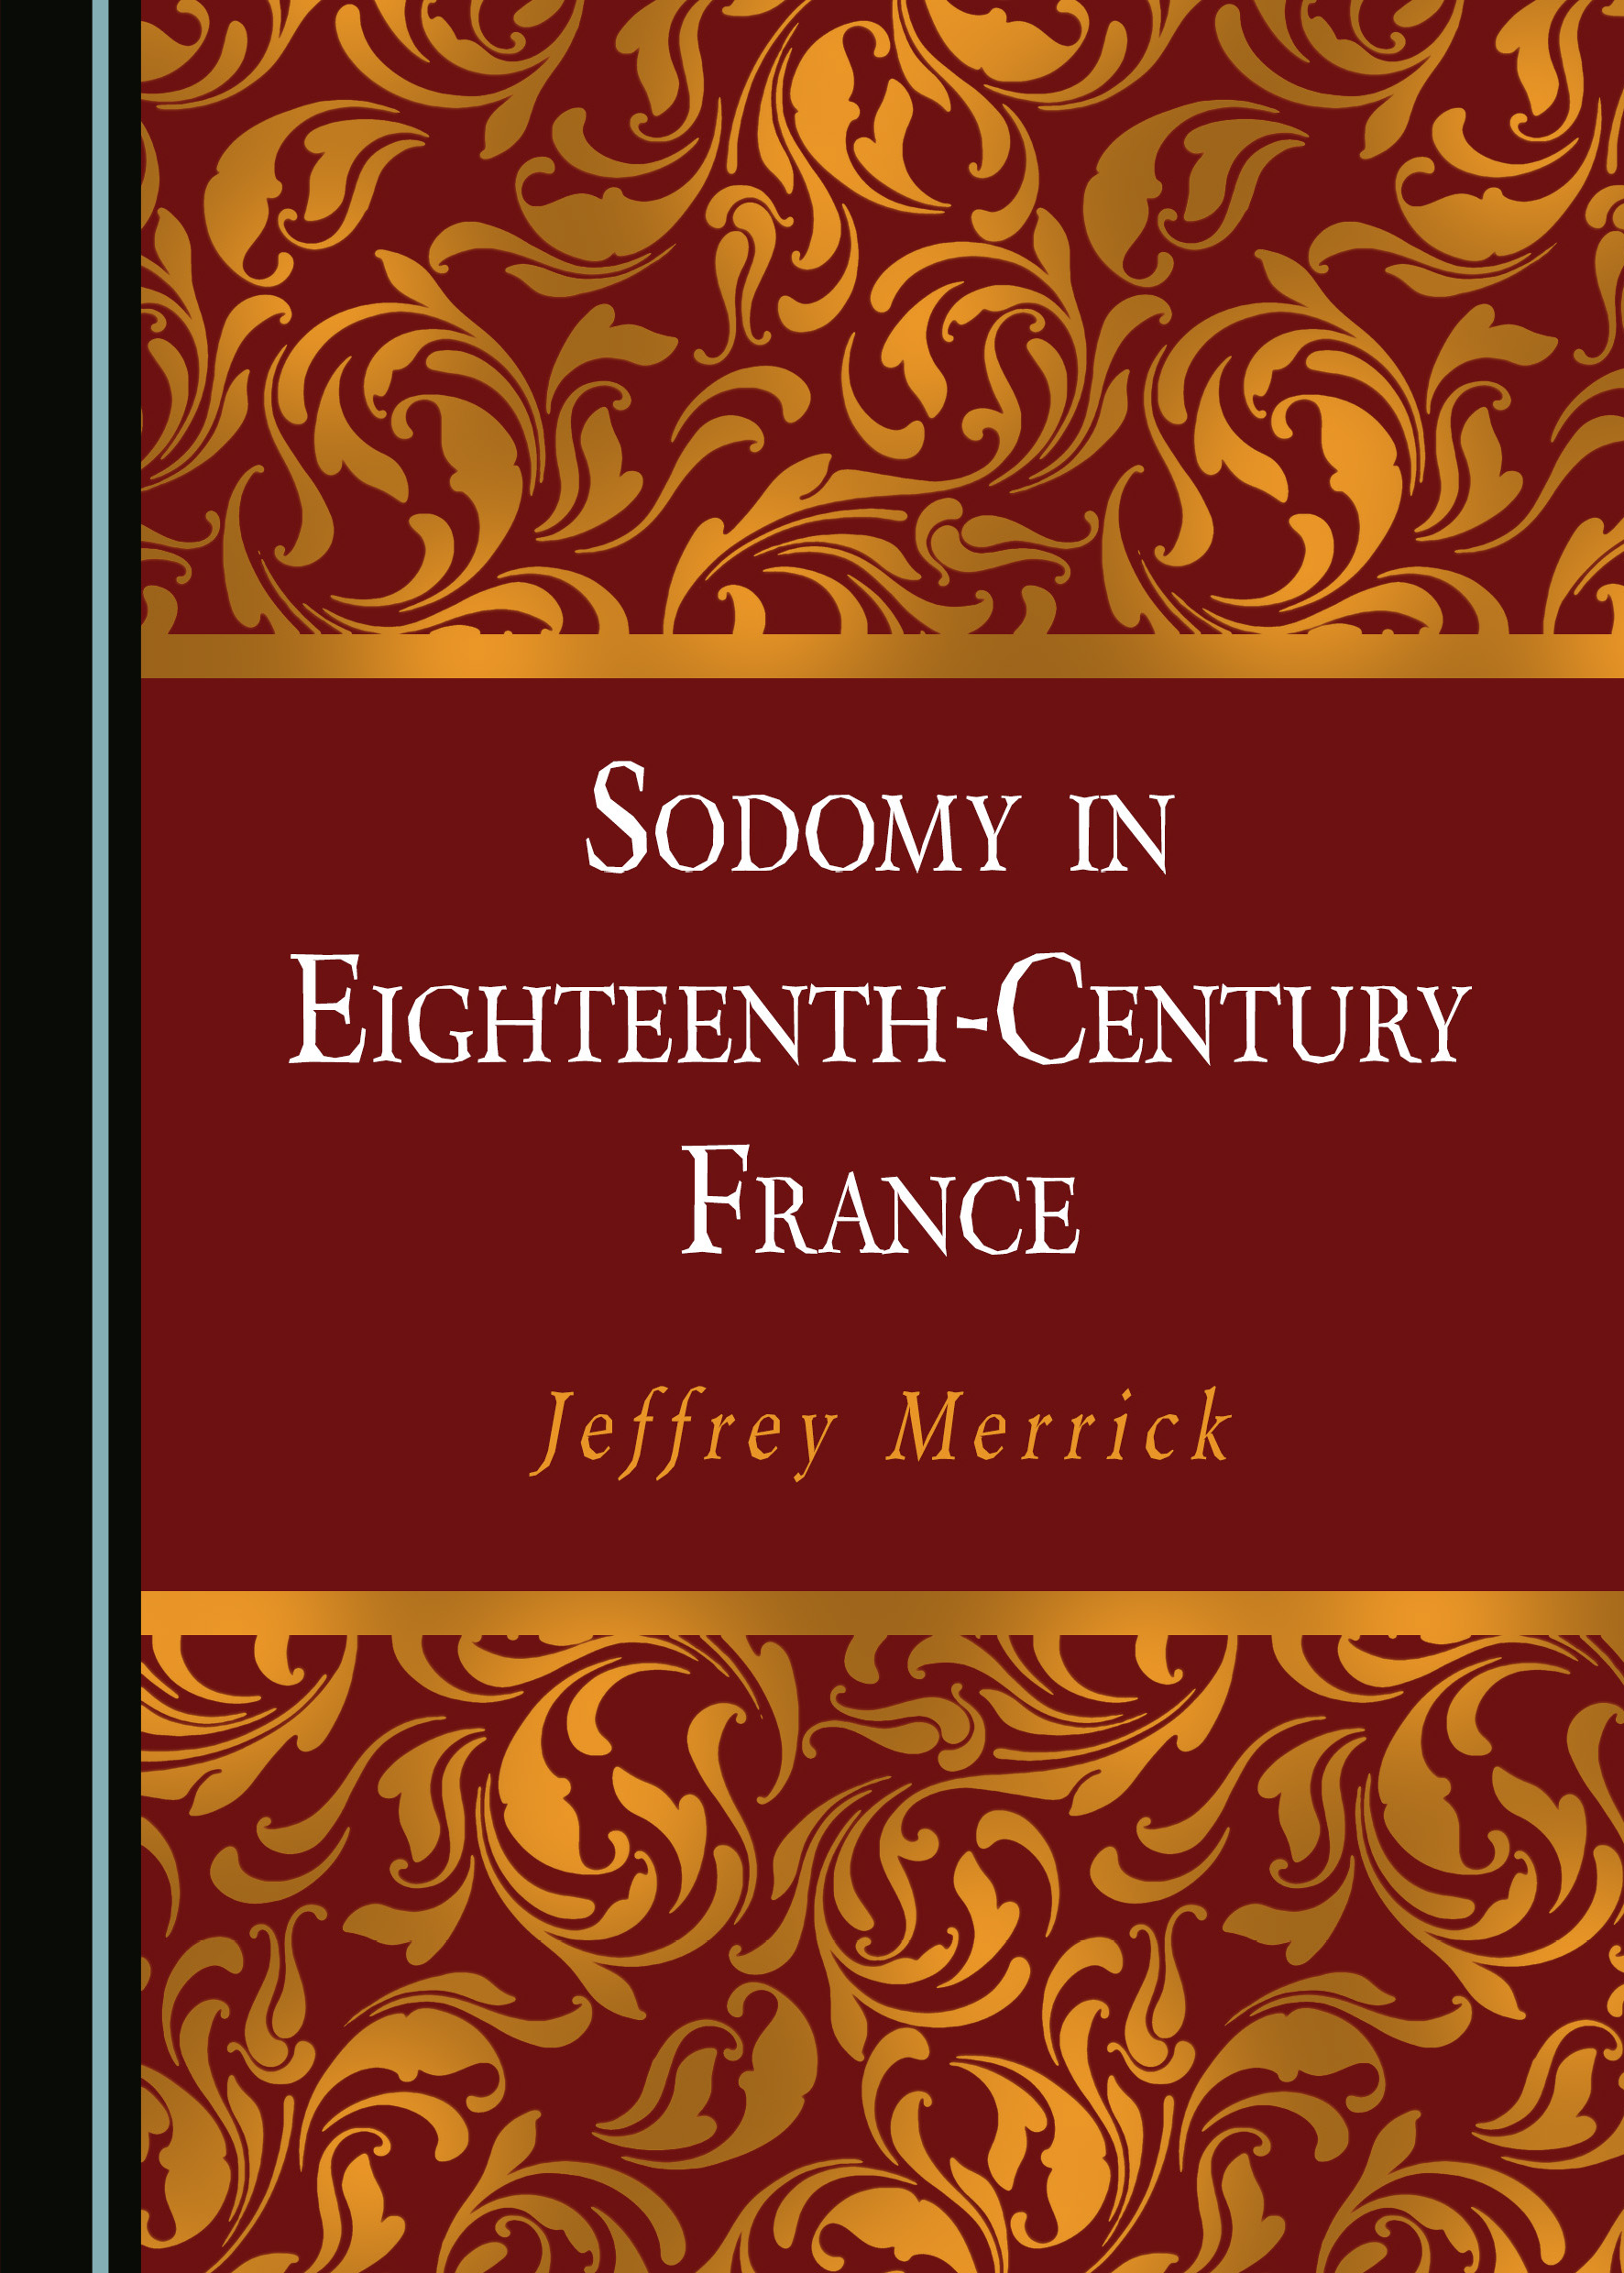 Sodomy in Eighteenth-Century France